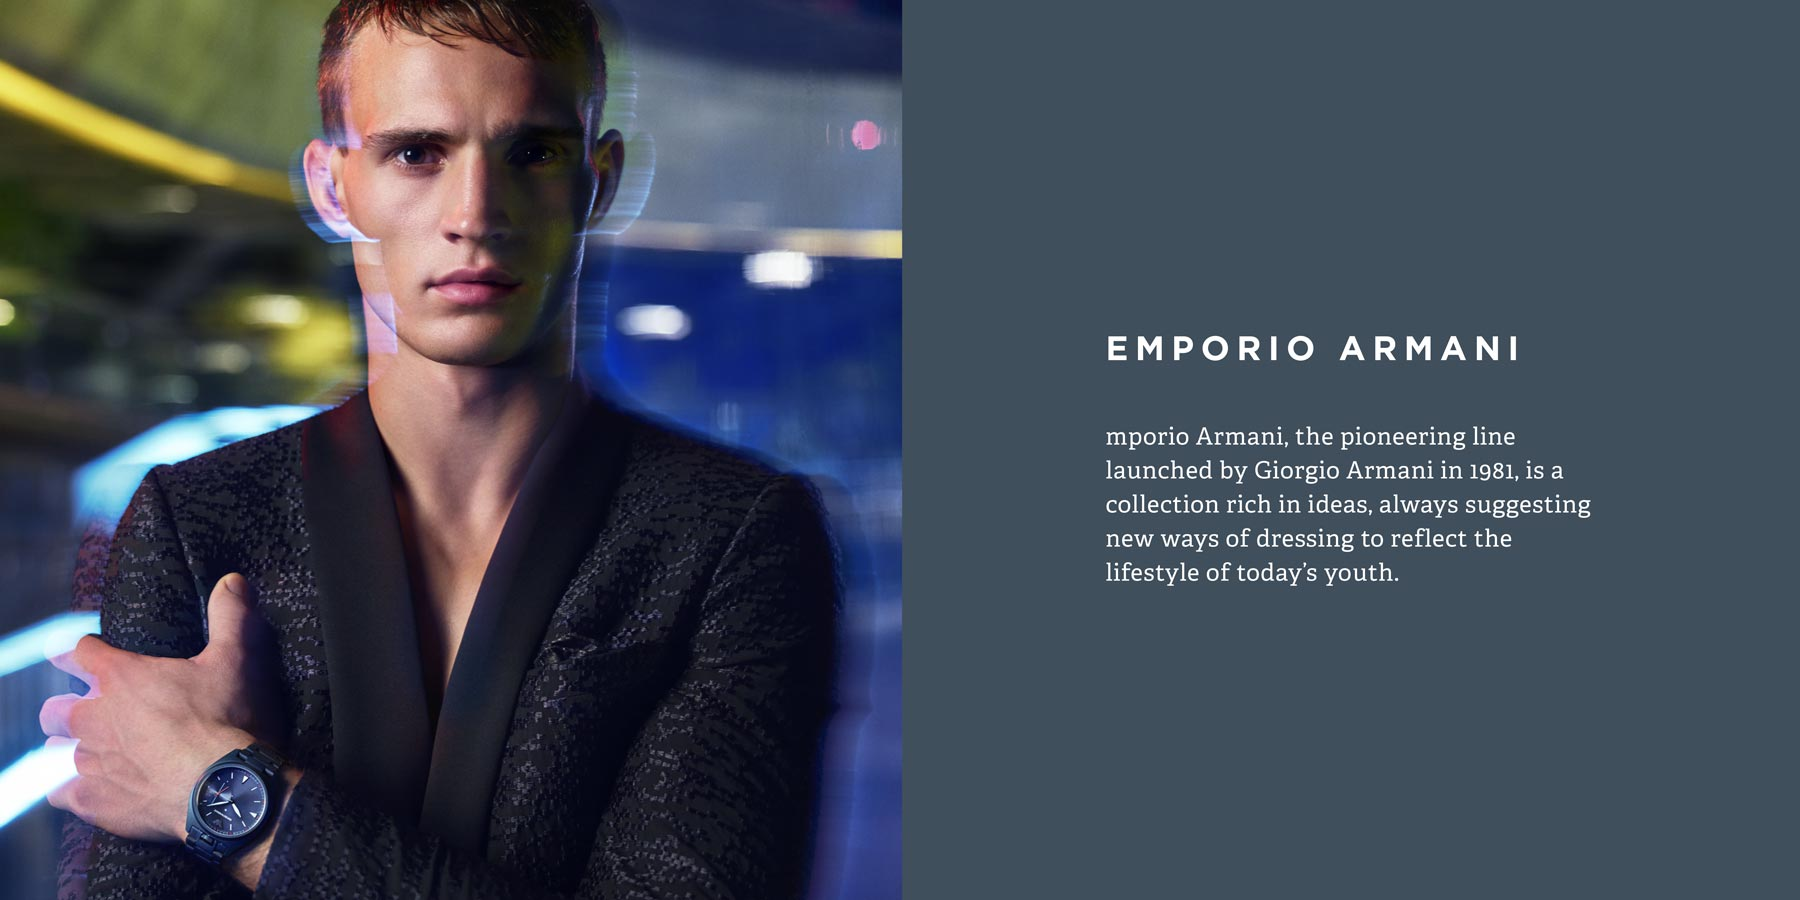 Emporio Armani, the pioneering line launched by Giorgio Armani in 1981, is a collection rich in ideas, always suggesting new ways of dressing to reflect the lifestyle of today's youth.